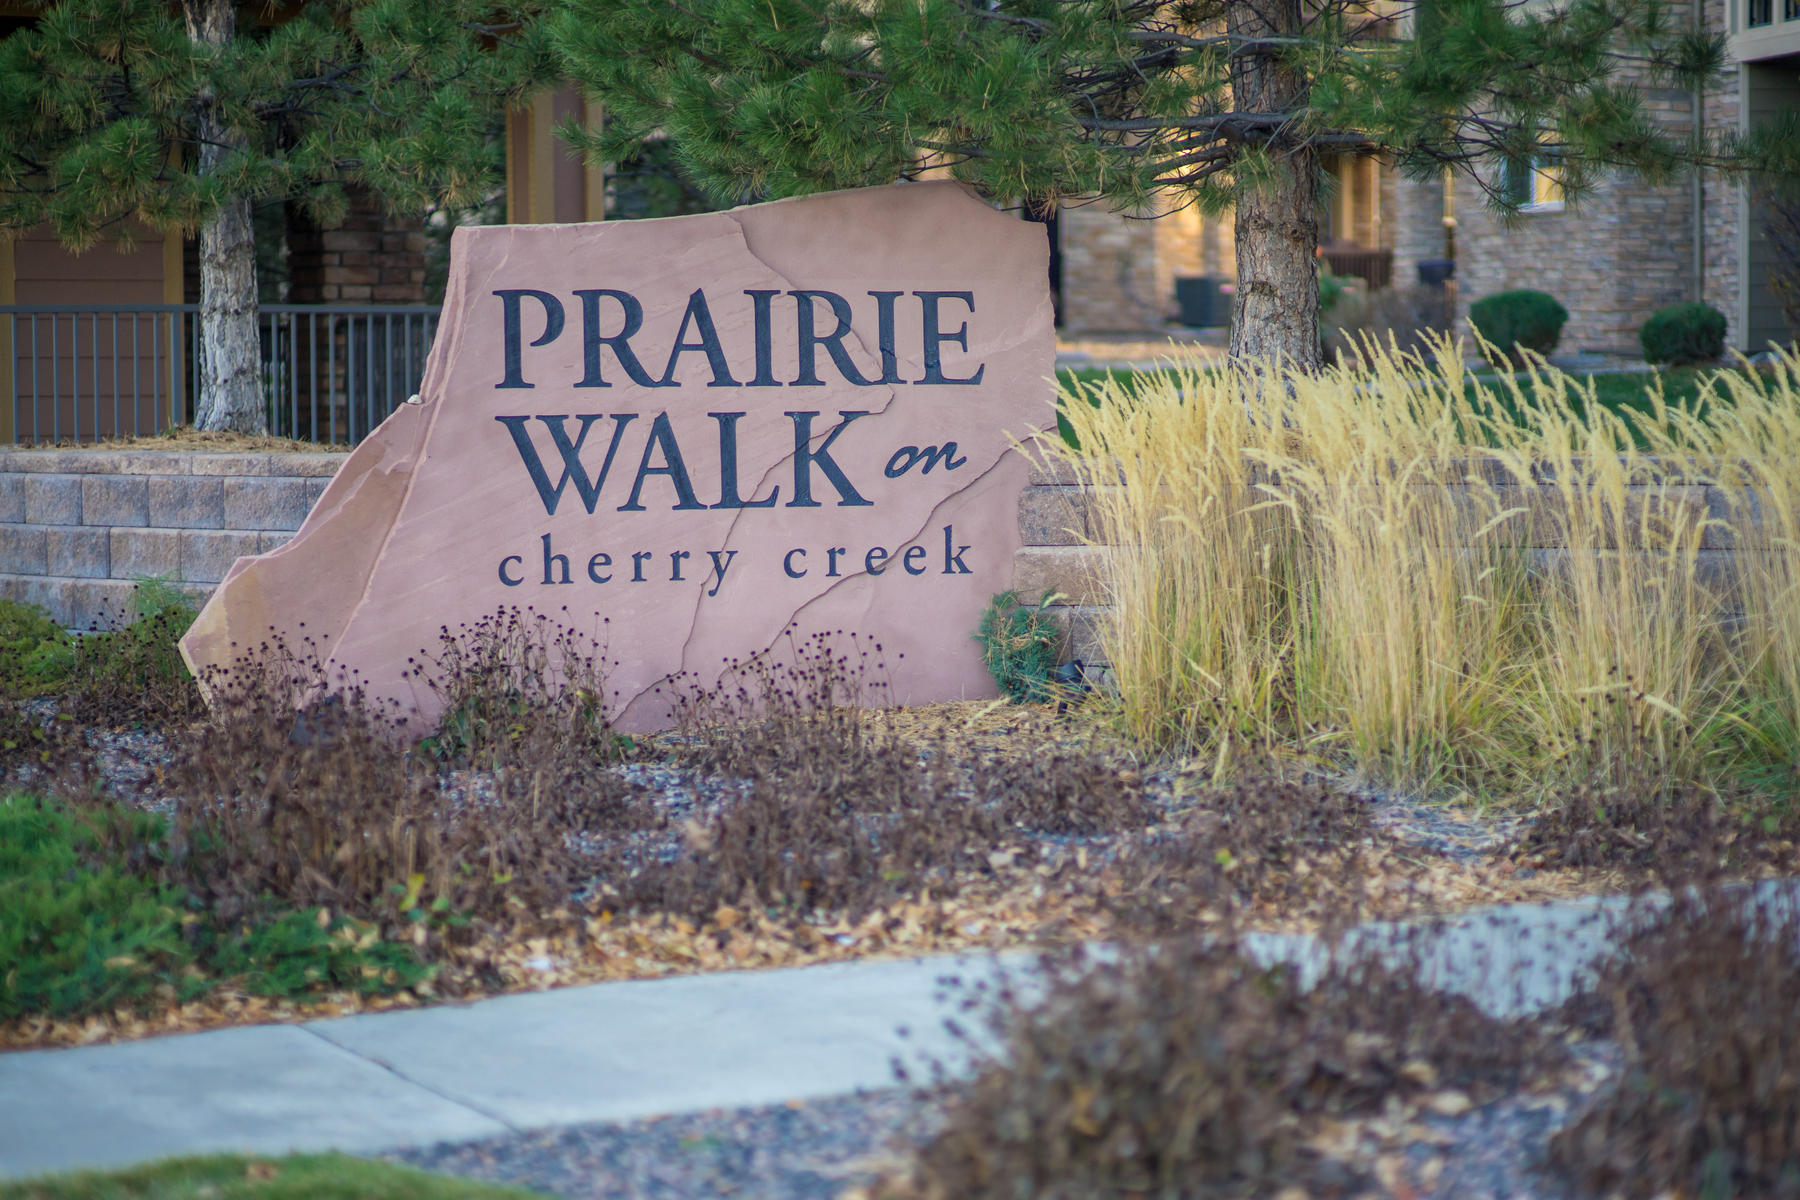 Single Family Home for Sale at PRAIRIE WALK ON CHERRY CREEK 9227 Rolling Way #206, Bldg 16 Parker, Colorado, 80134 United States